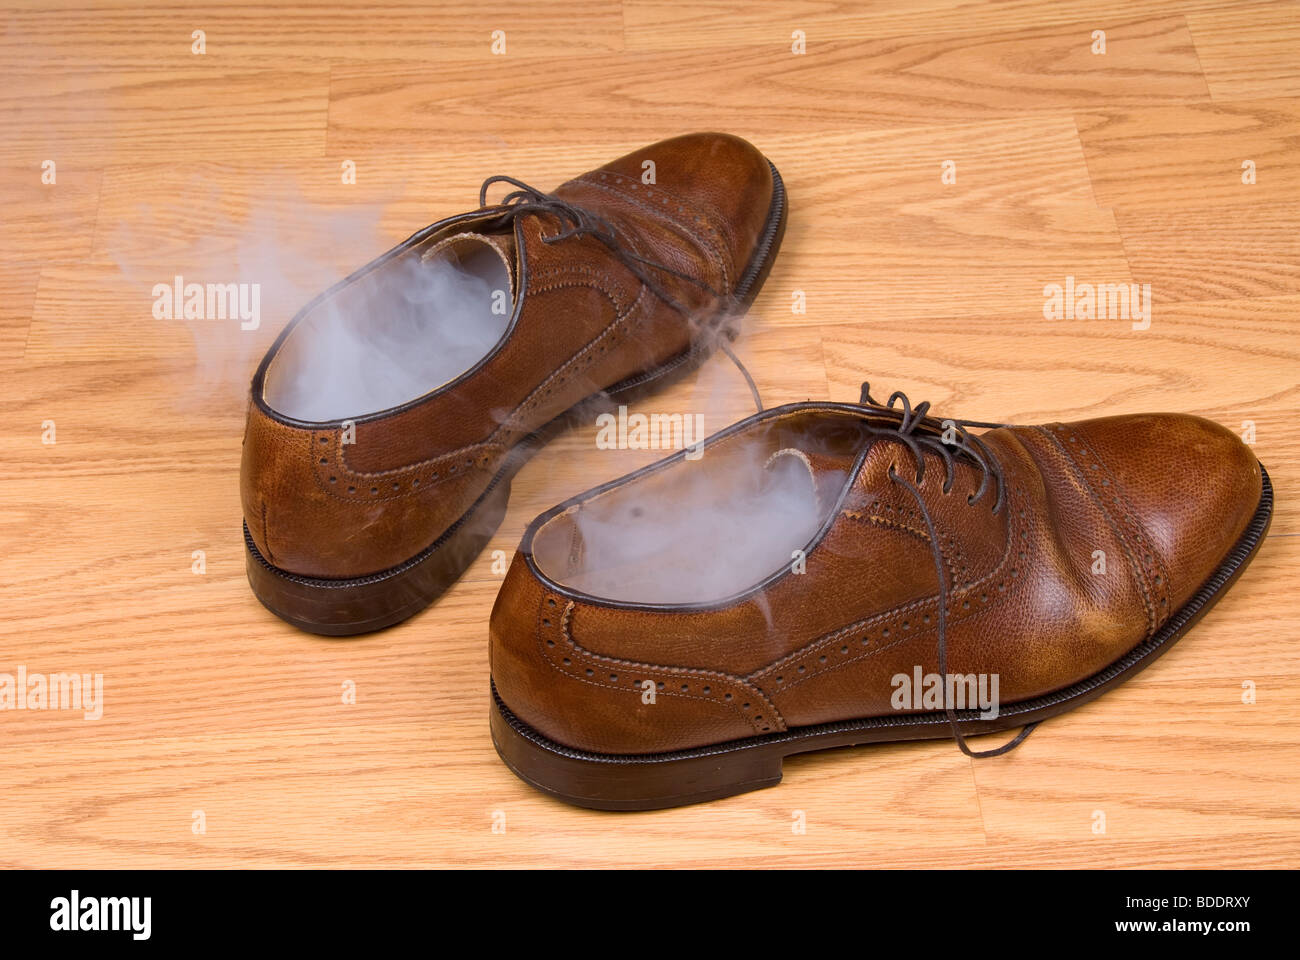 A pair of dress shoes steaming after a hot day of wear and tear. - Stock Image